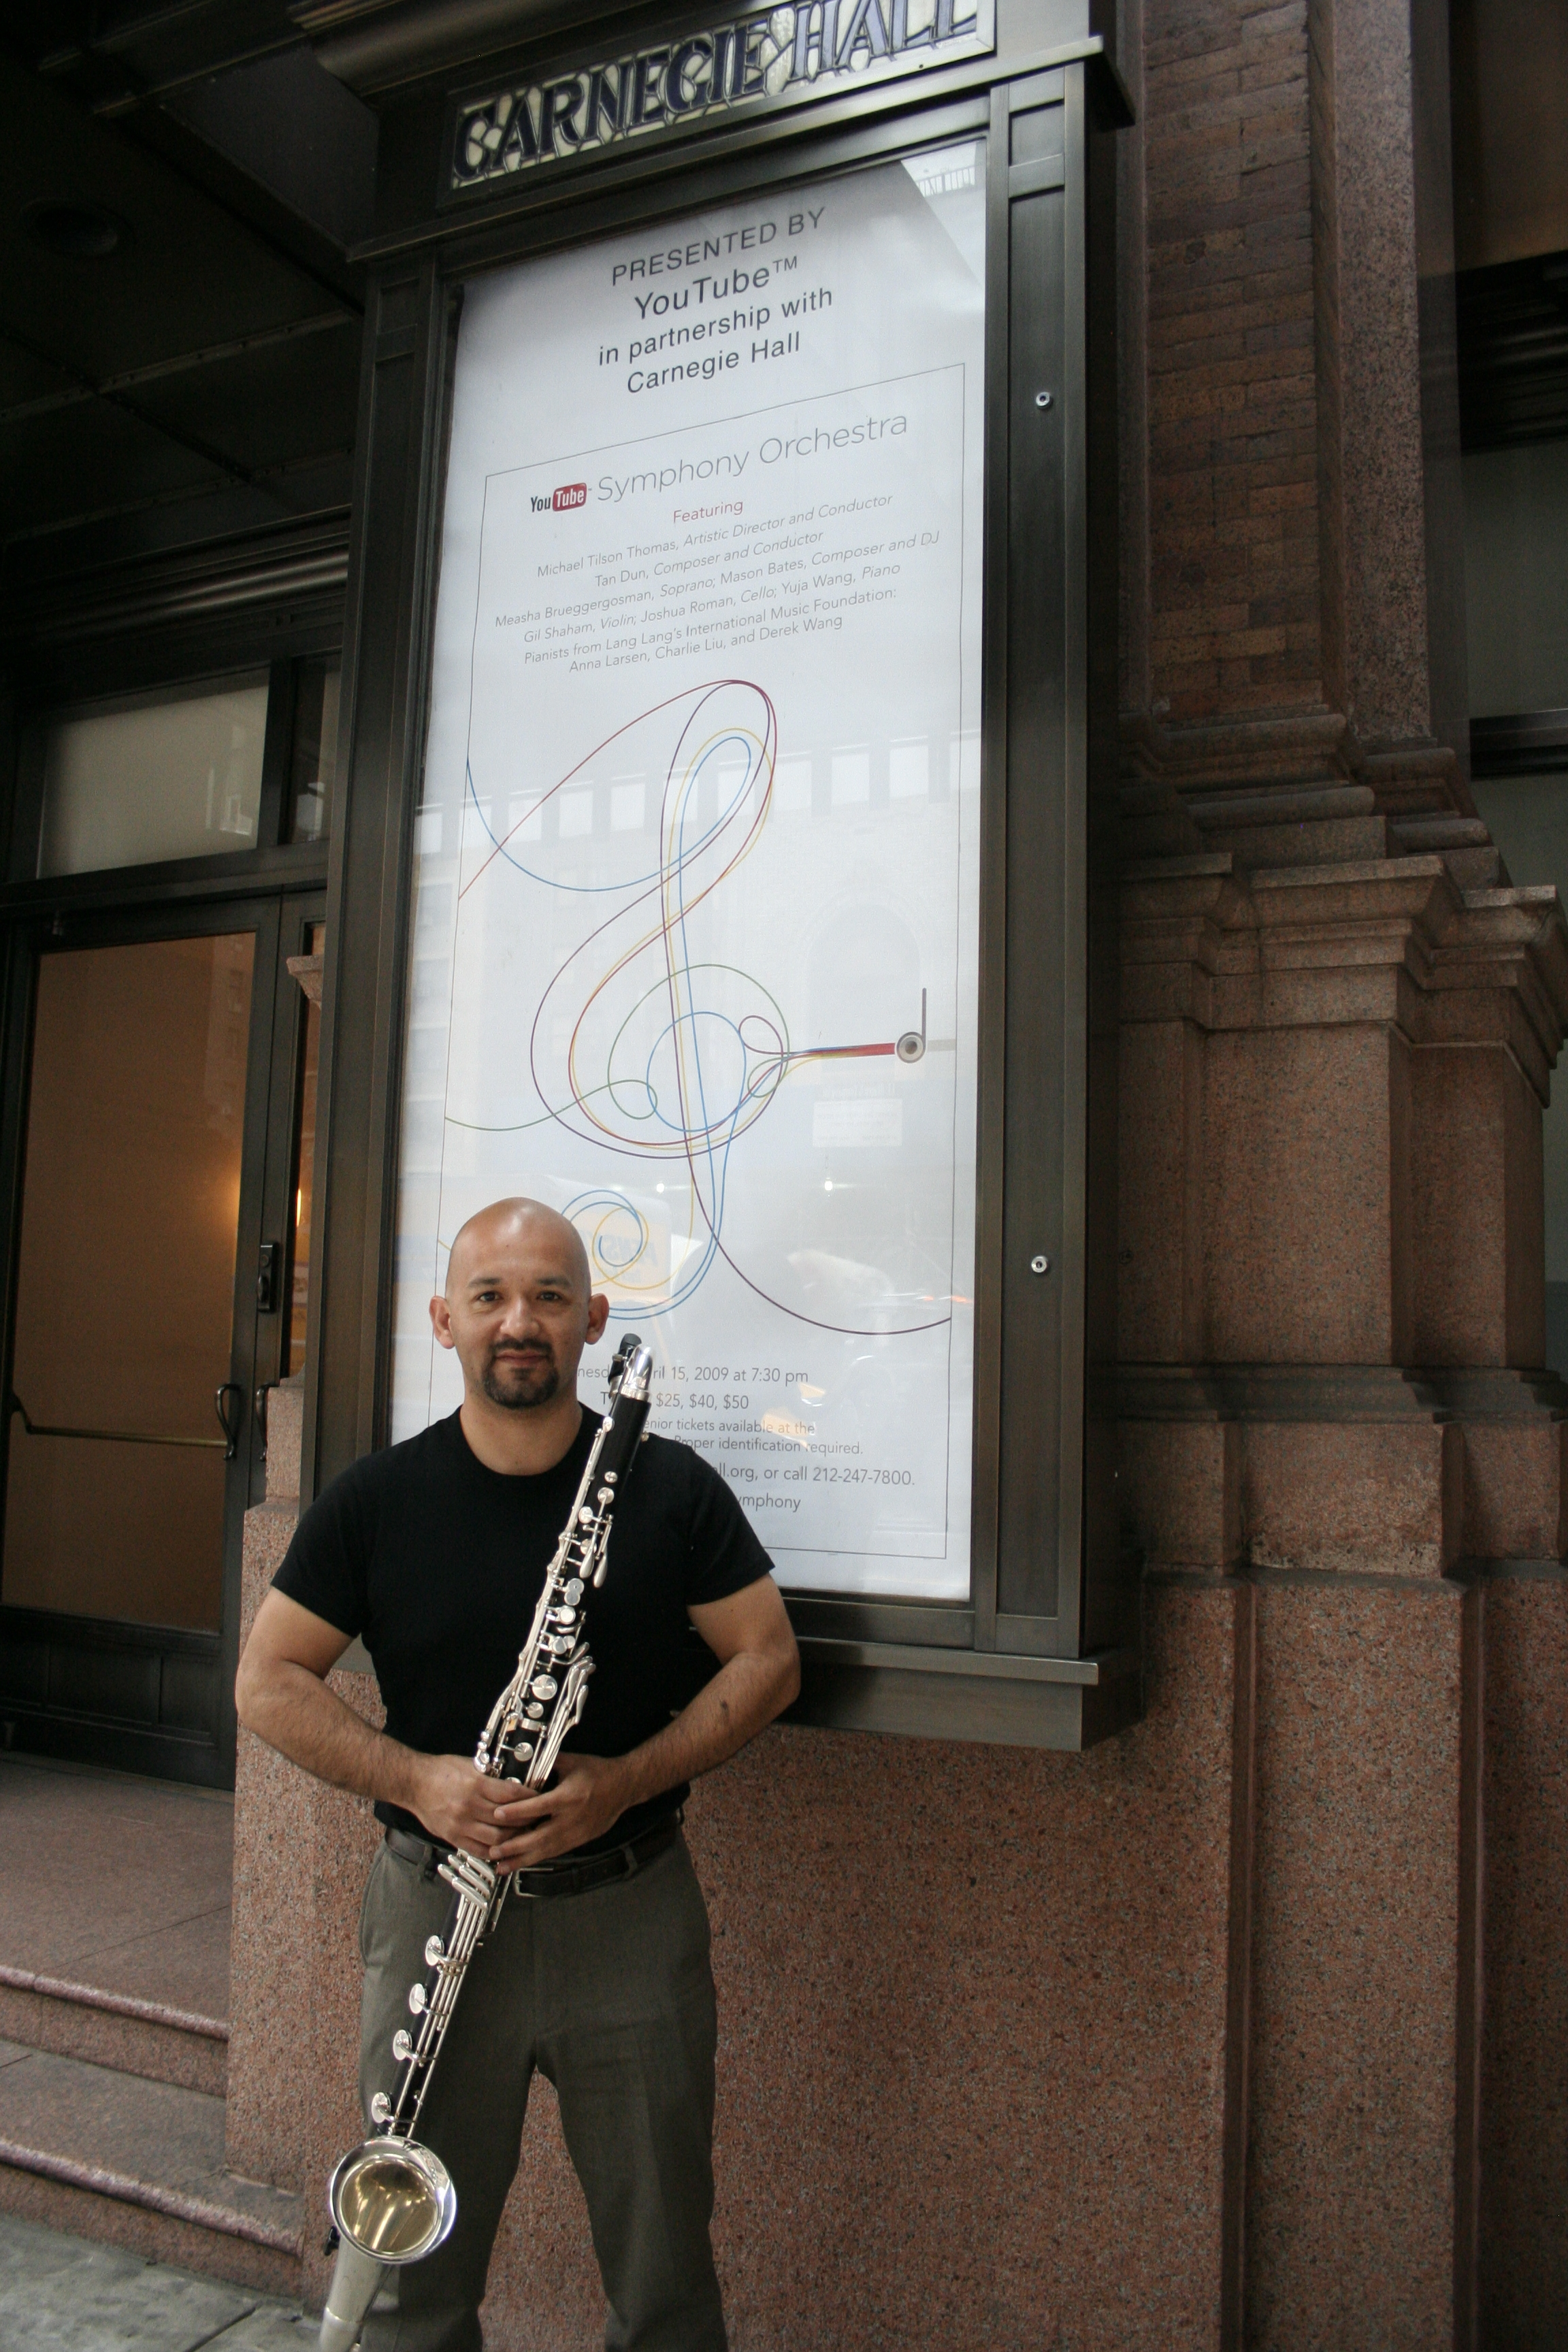 Marco Mazzini at Carnegie Hall